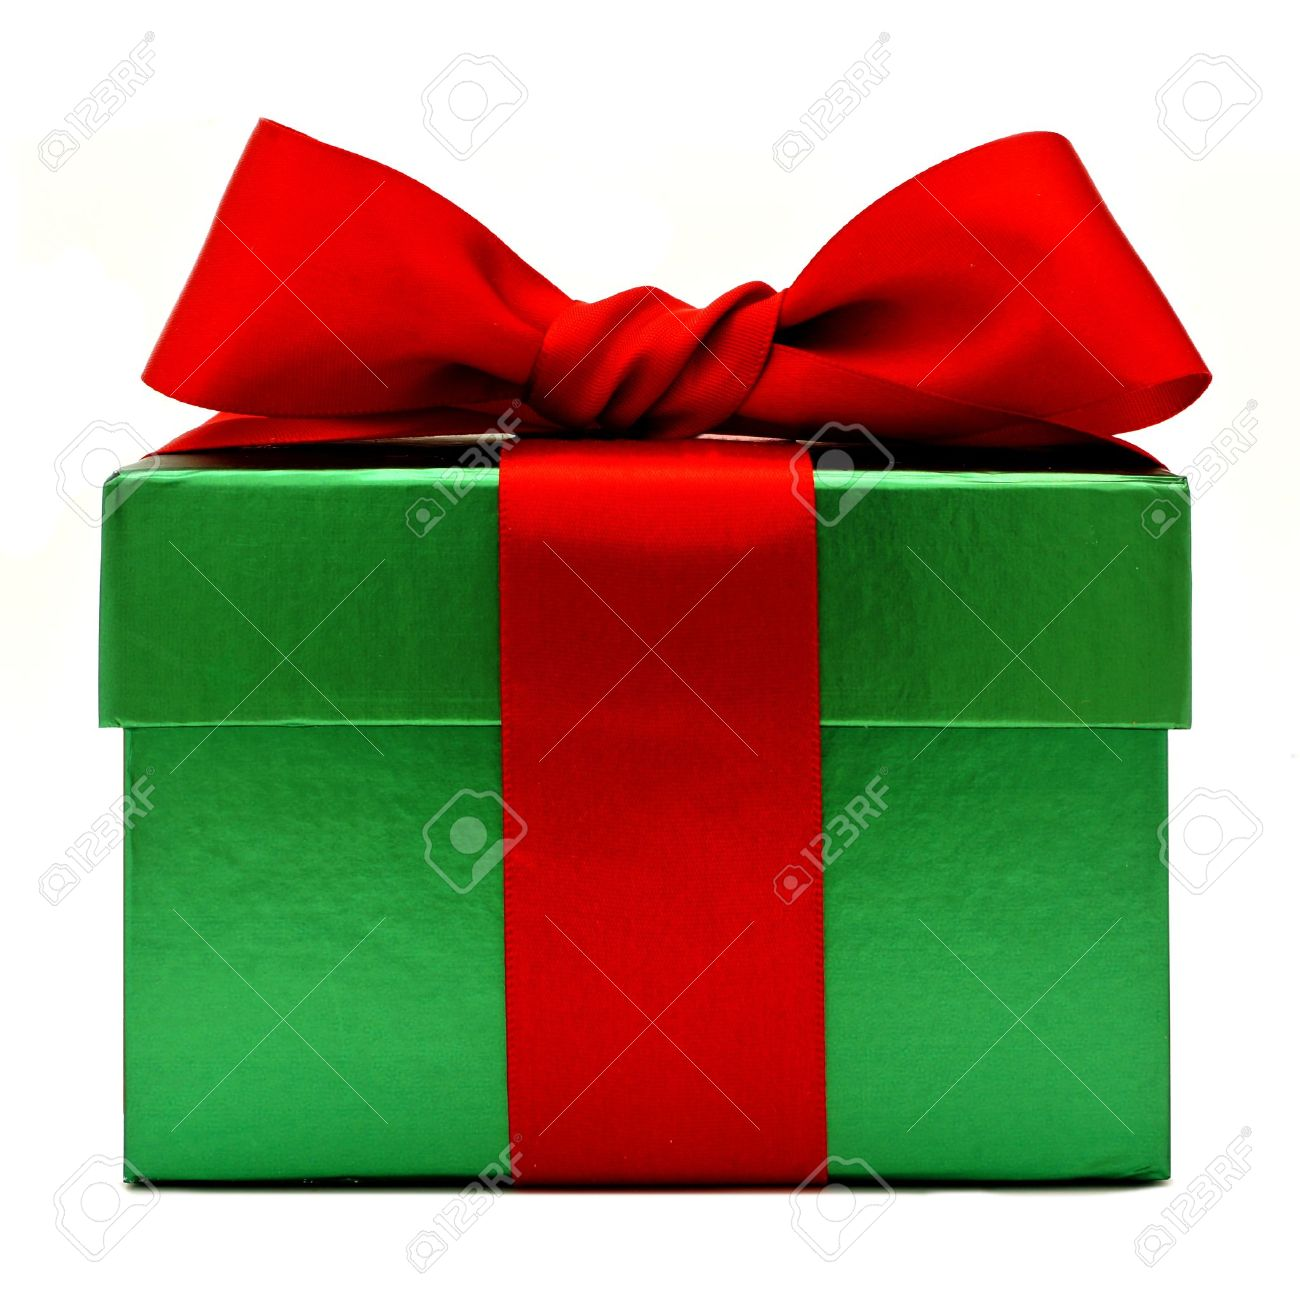 Green Christmas Gift Box With Red Bow Isolated On White Stock Photo Picture And Royalty Free Image Image 23835271